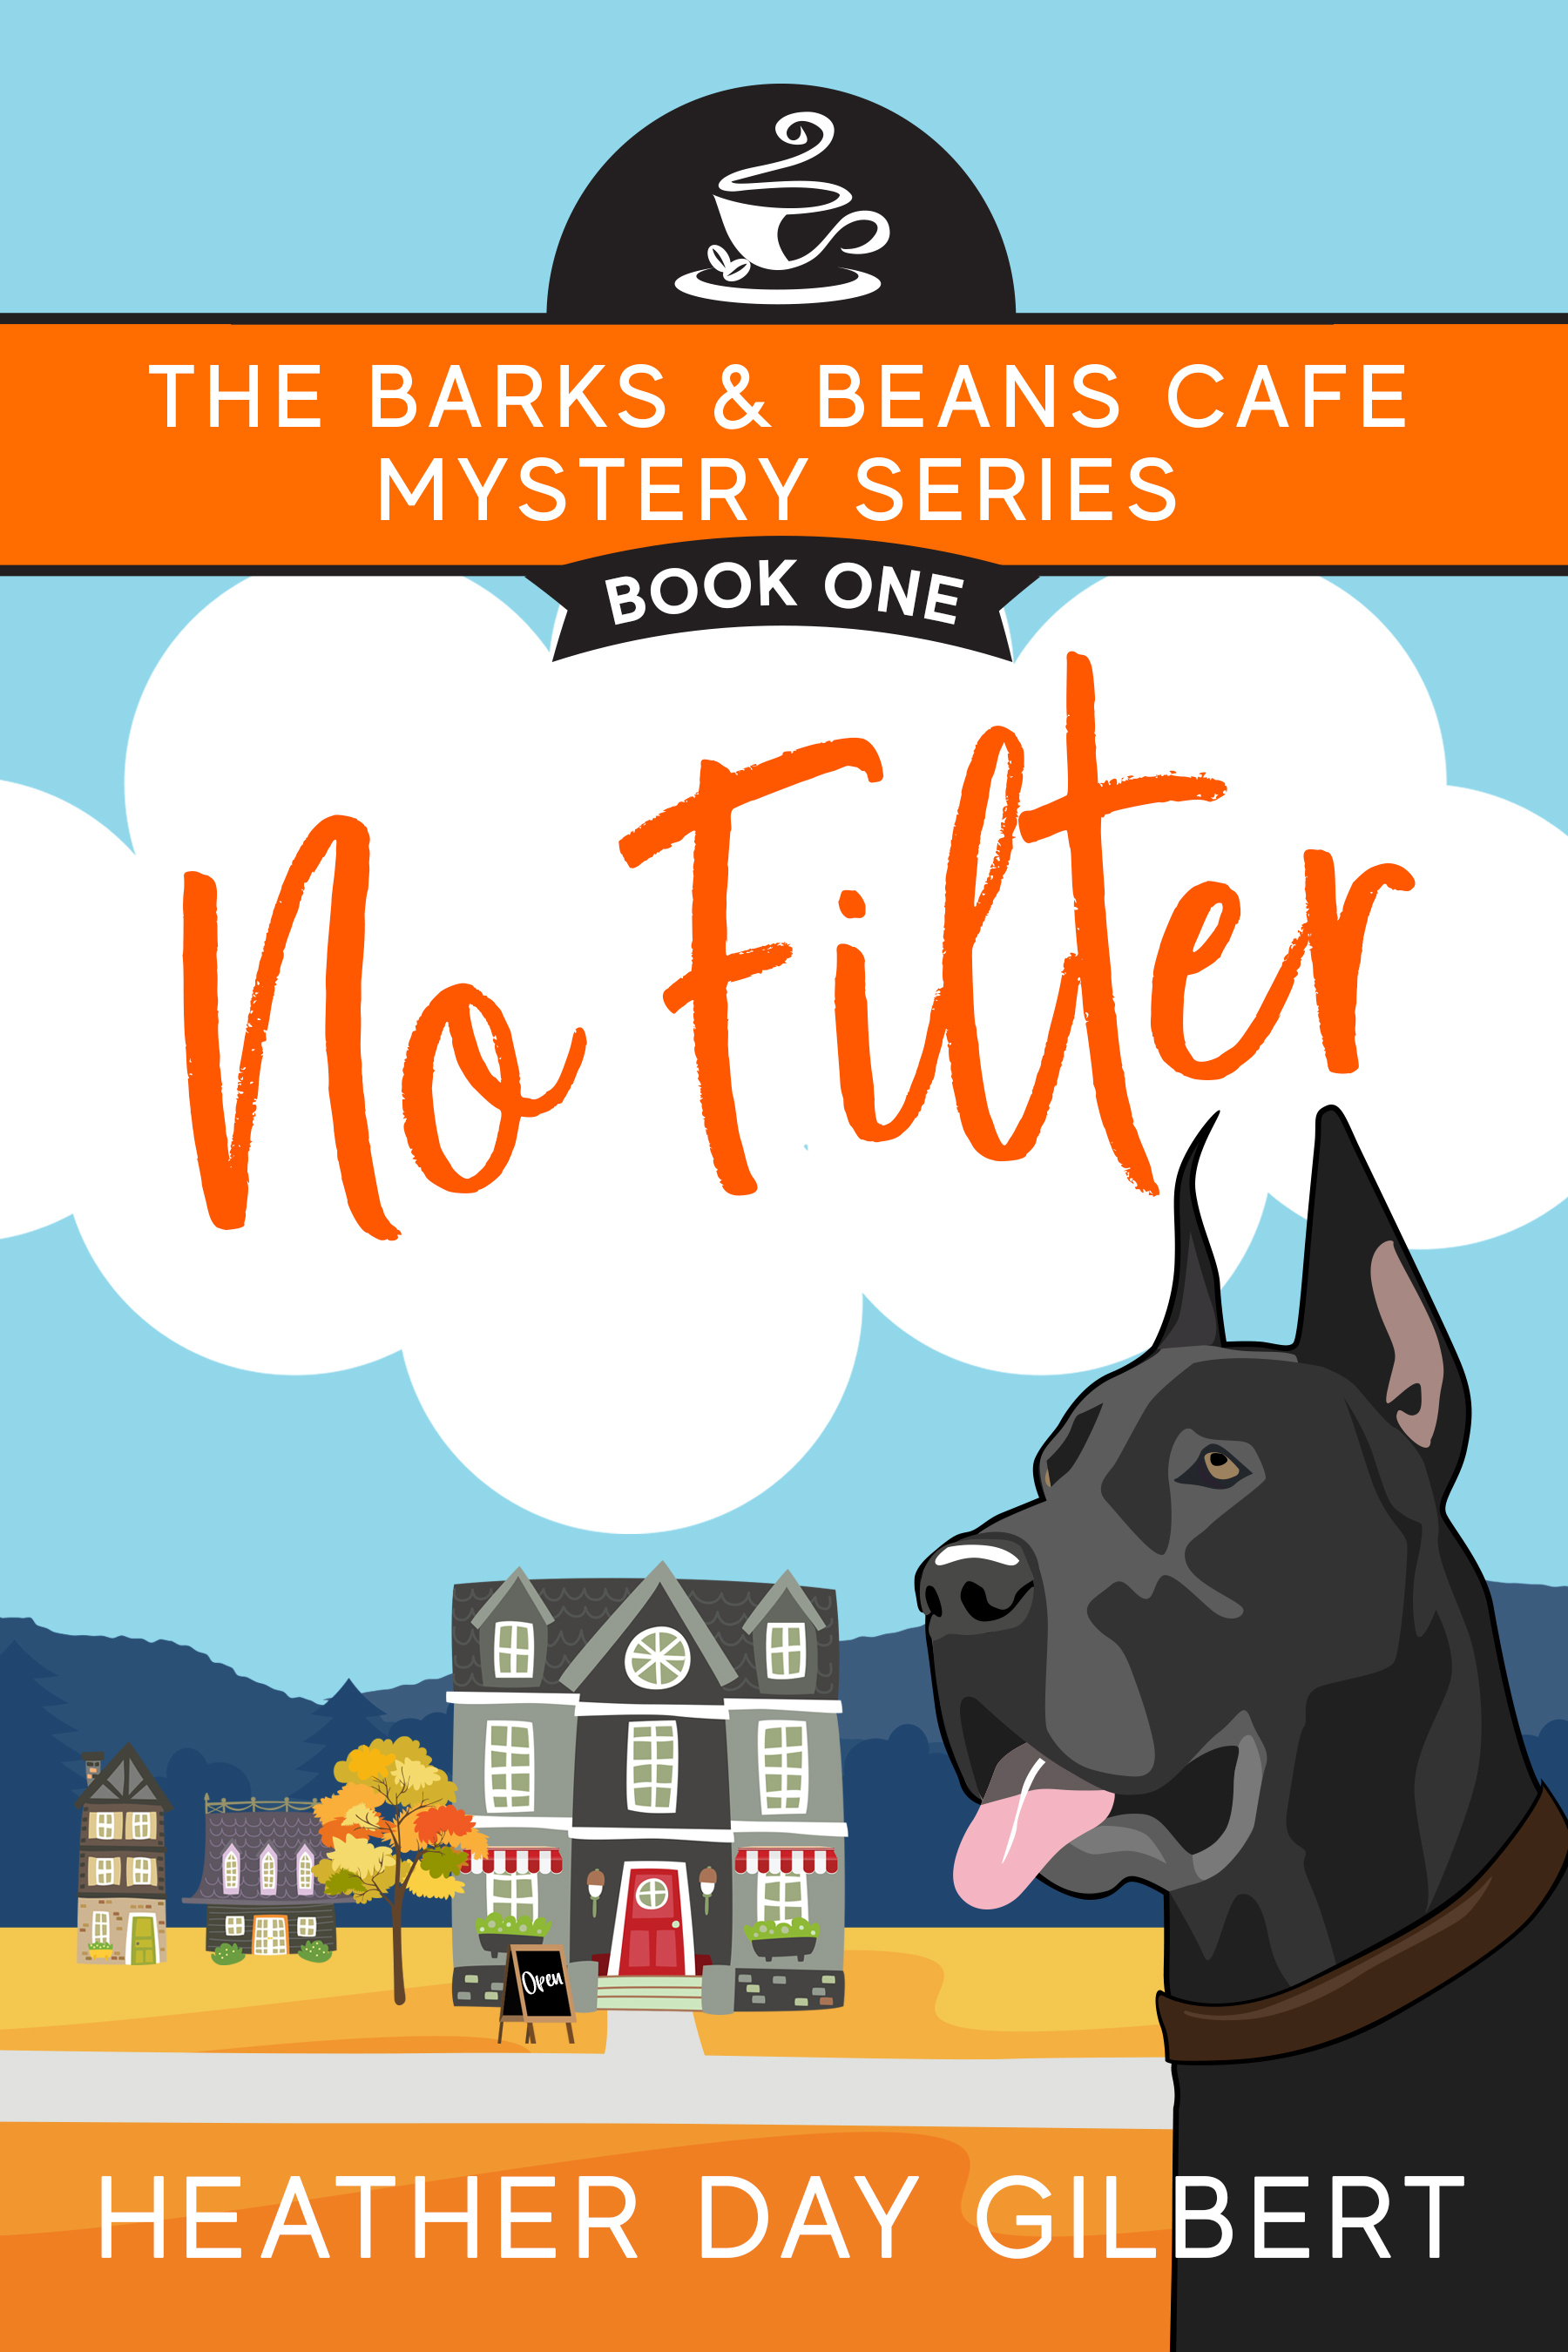 No Filter (Barks & Beans Cafe Cozy Mystery #1) by Heather Day Gilbert